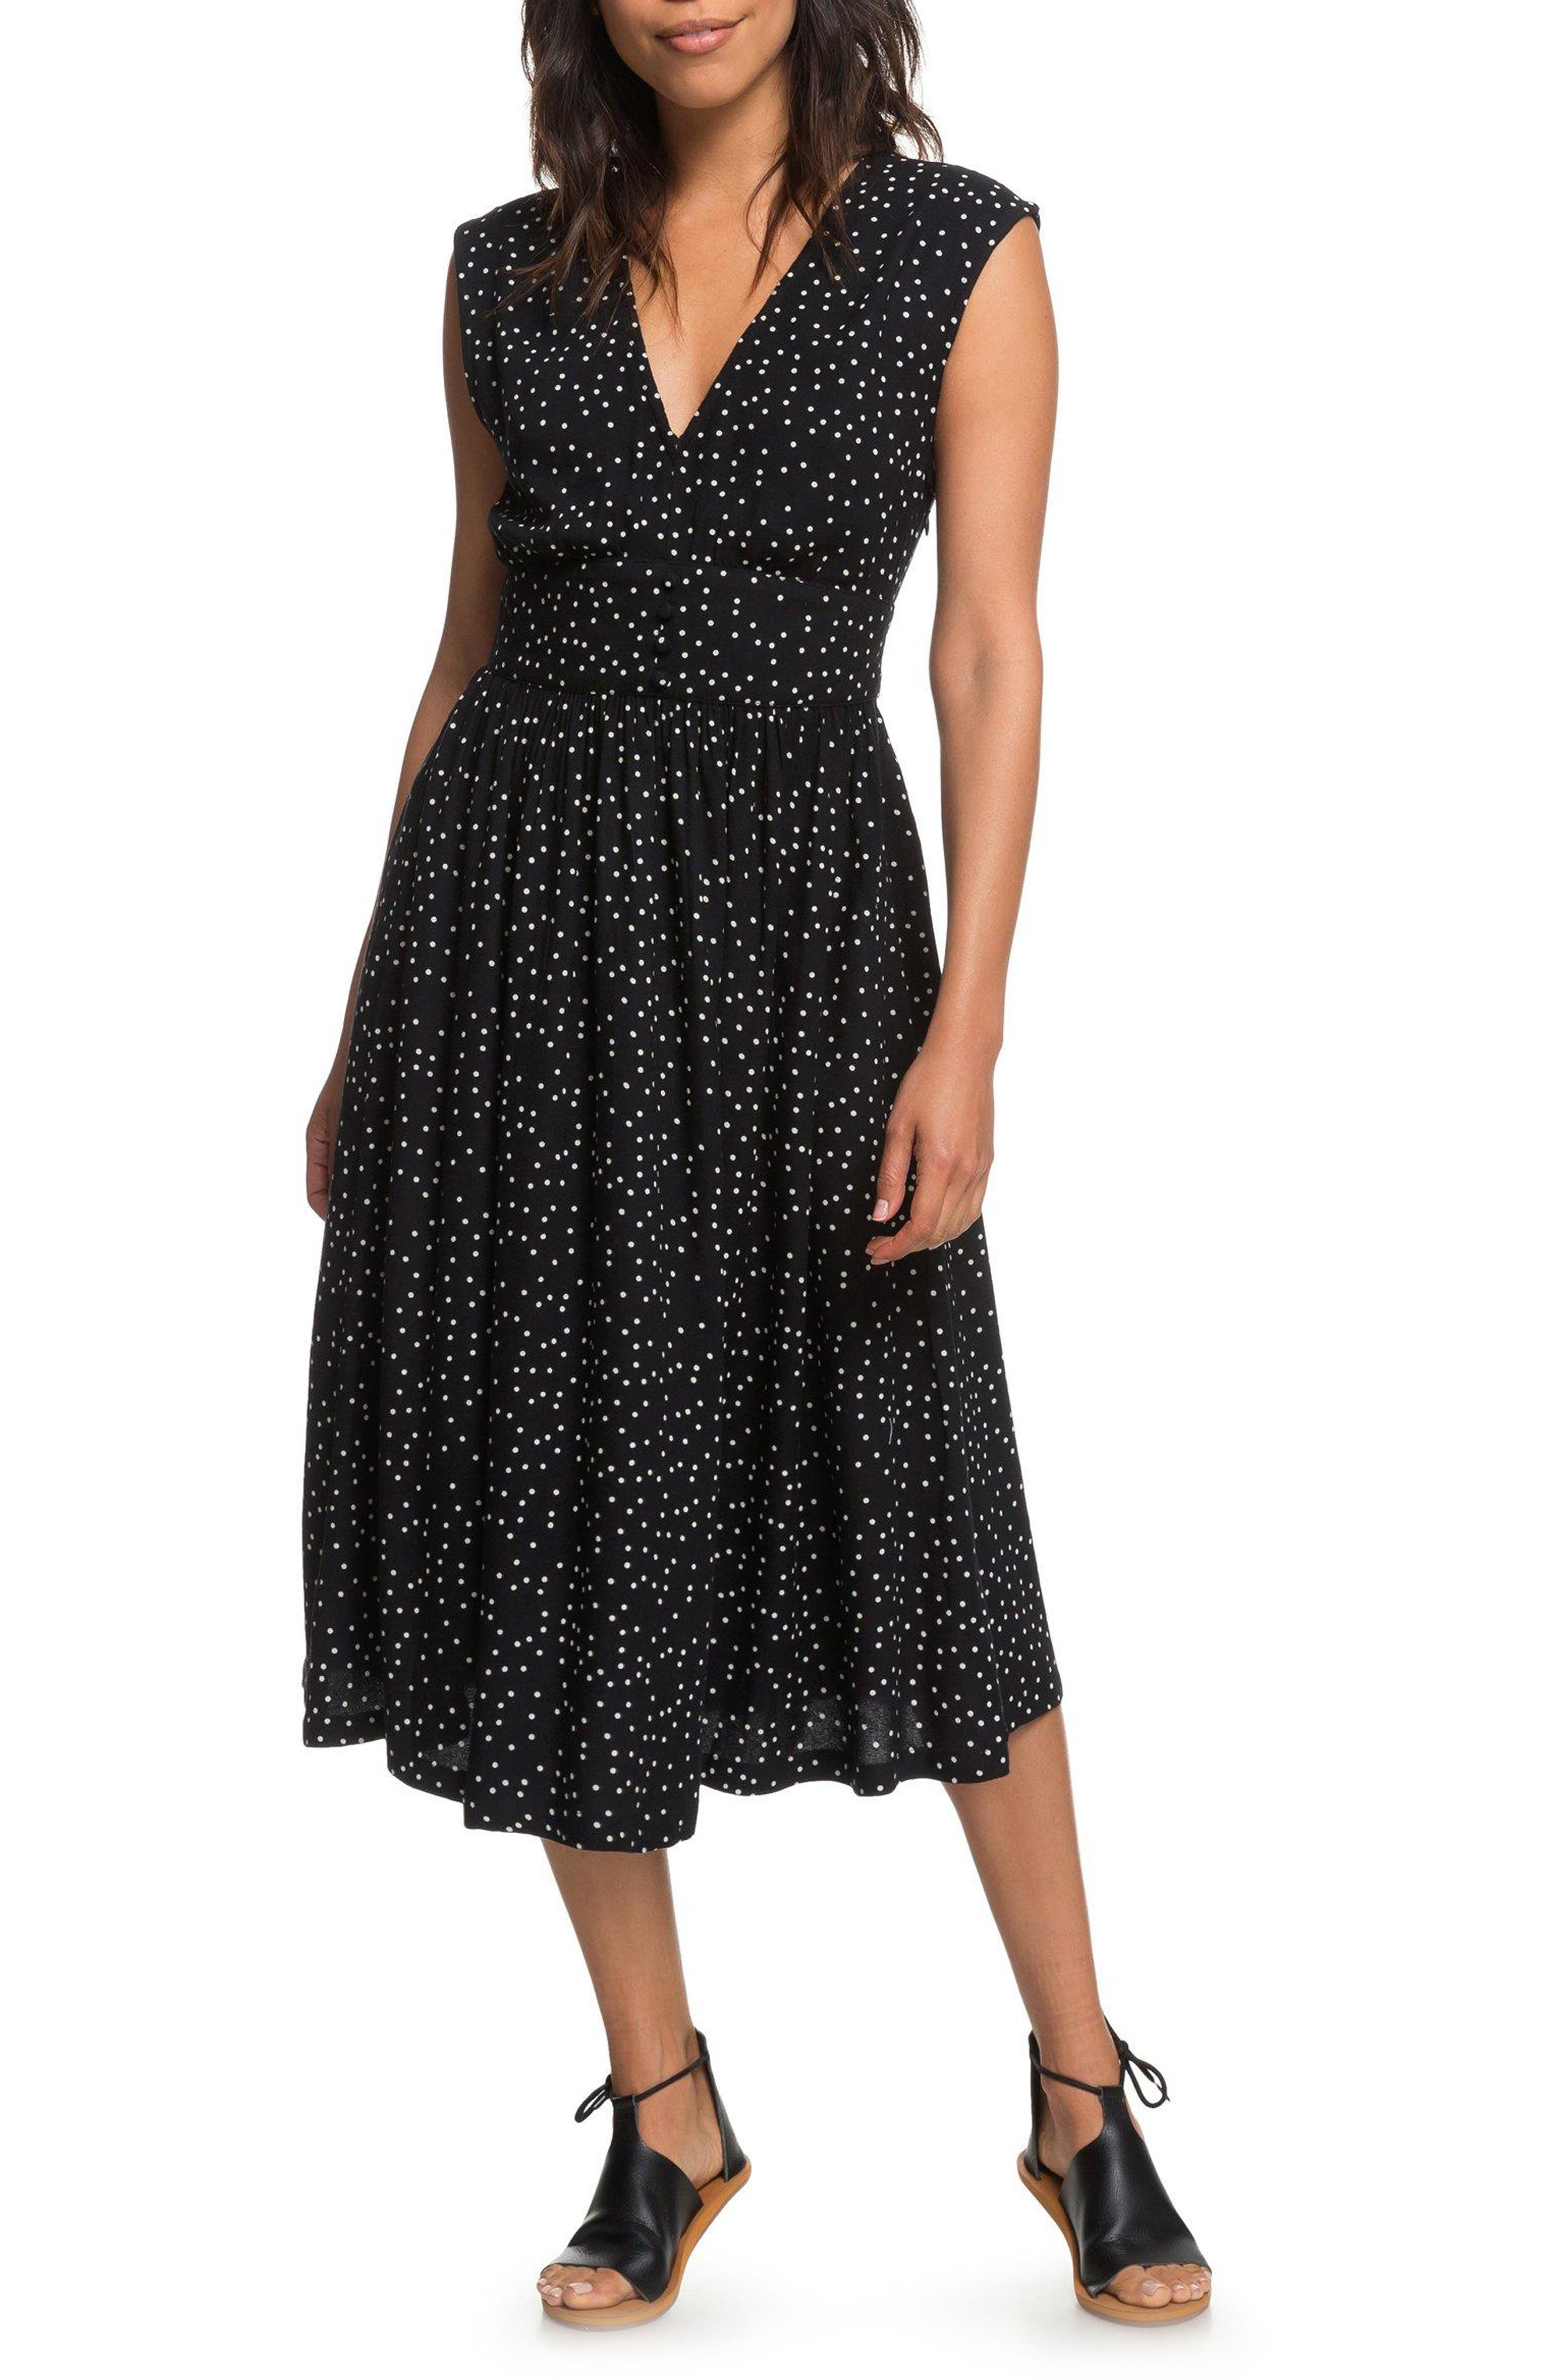 Retro Poetic Polka Dot Dress,                             Main thumbnail 1, color,                             001